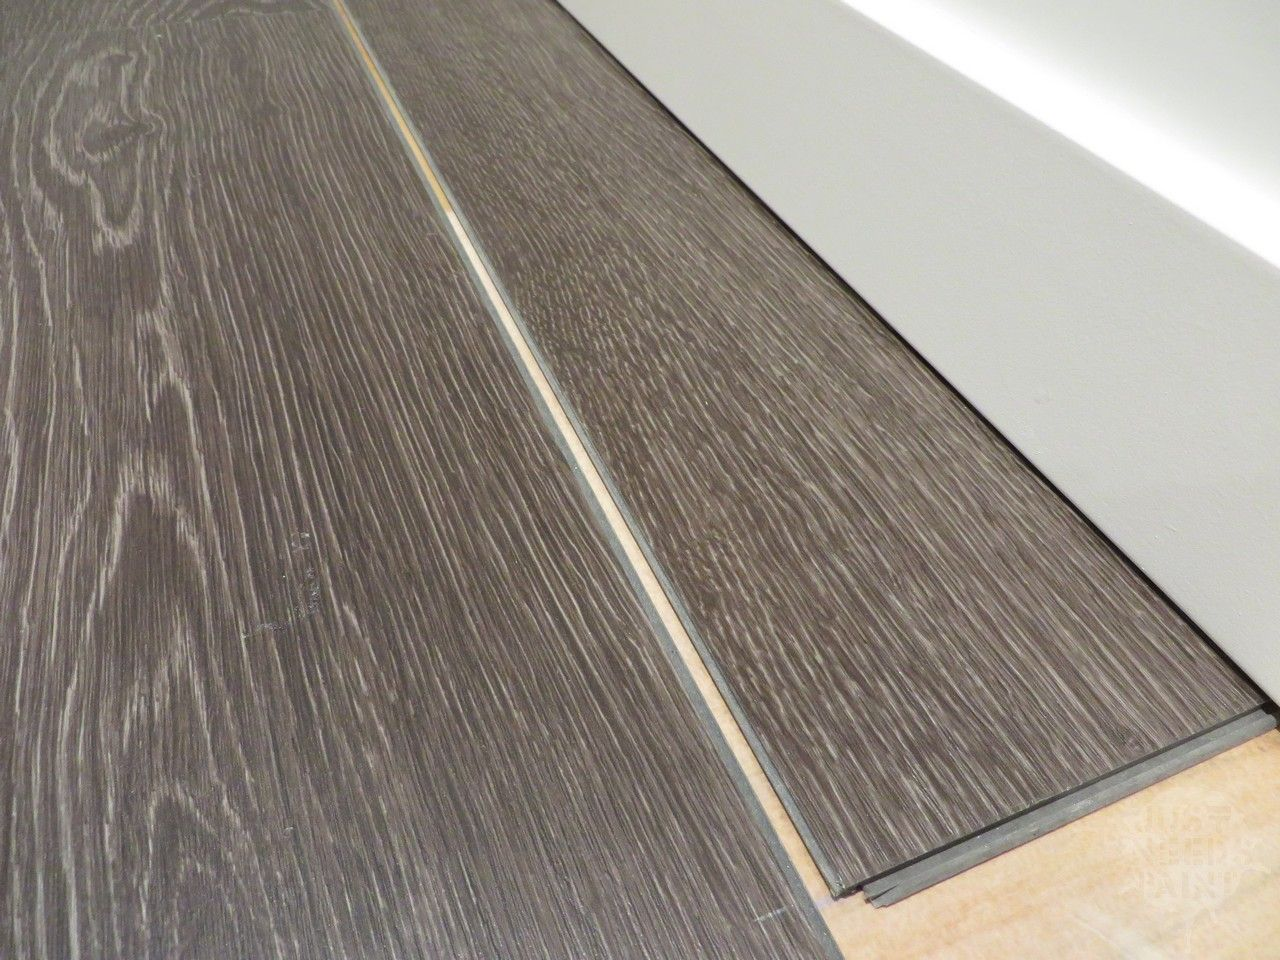 How To Install Click Laminate Flooring Without Removing Baseboards Just Needs Paint In 2020 Removing Baseboards Click Laminate Flooring Baseboards